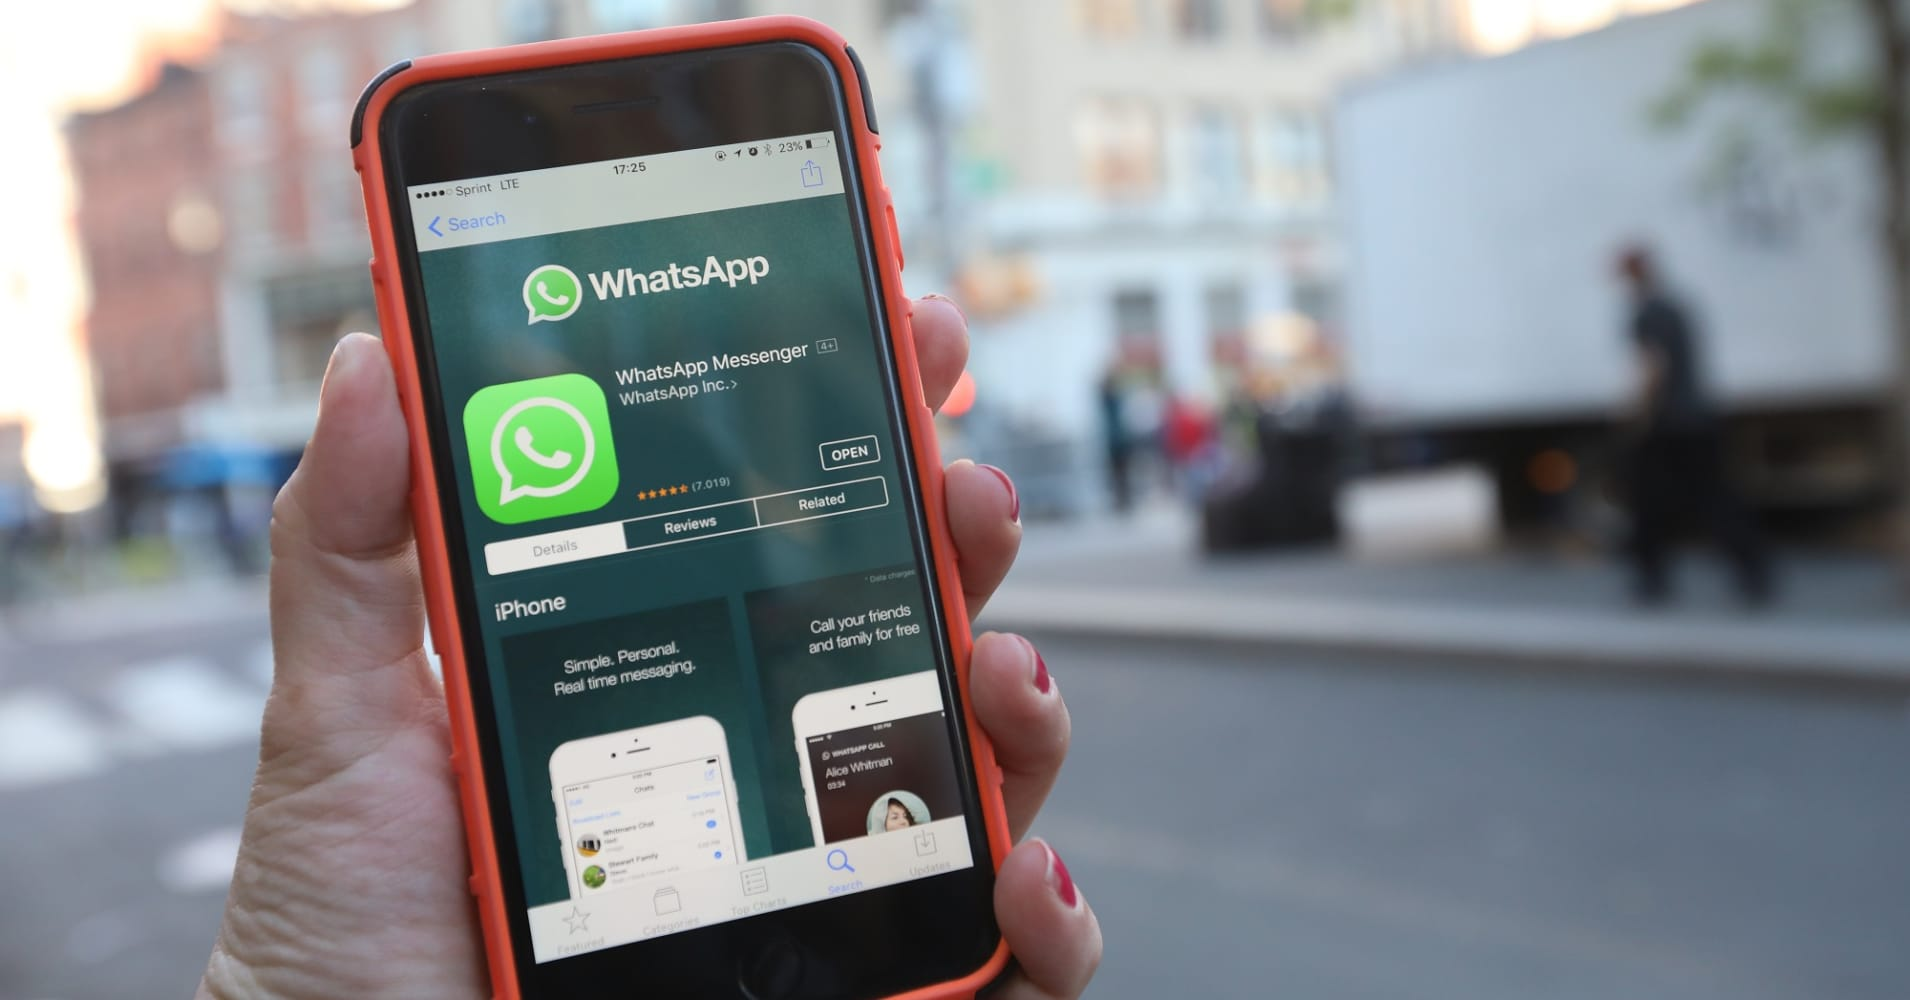 Here's everything you can do with Whatsapp's new group chat features